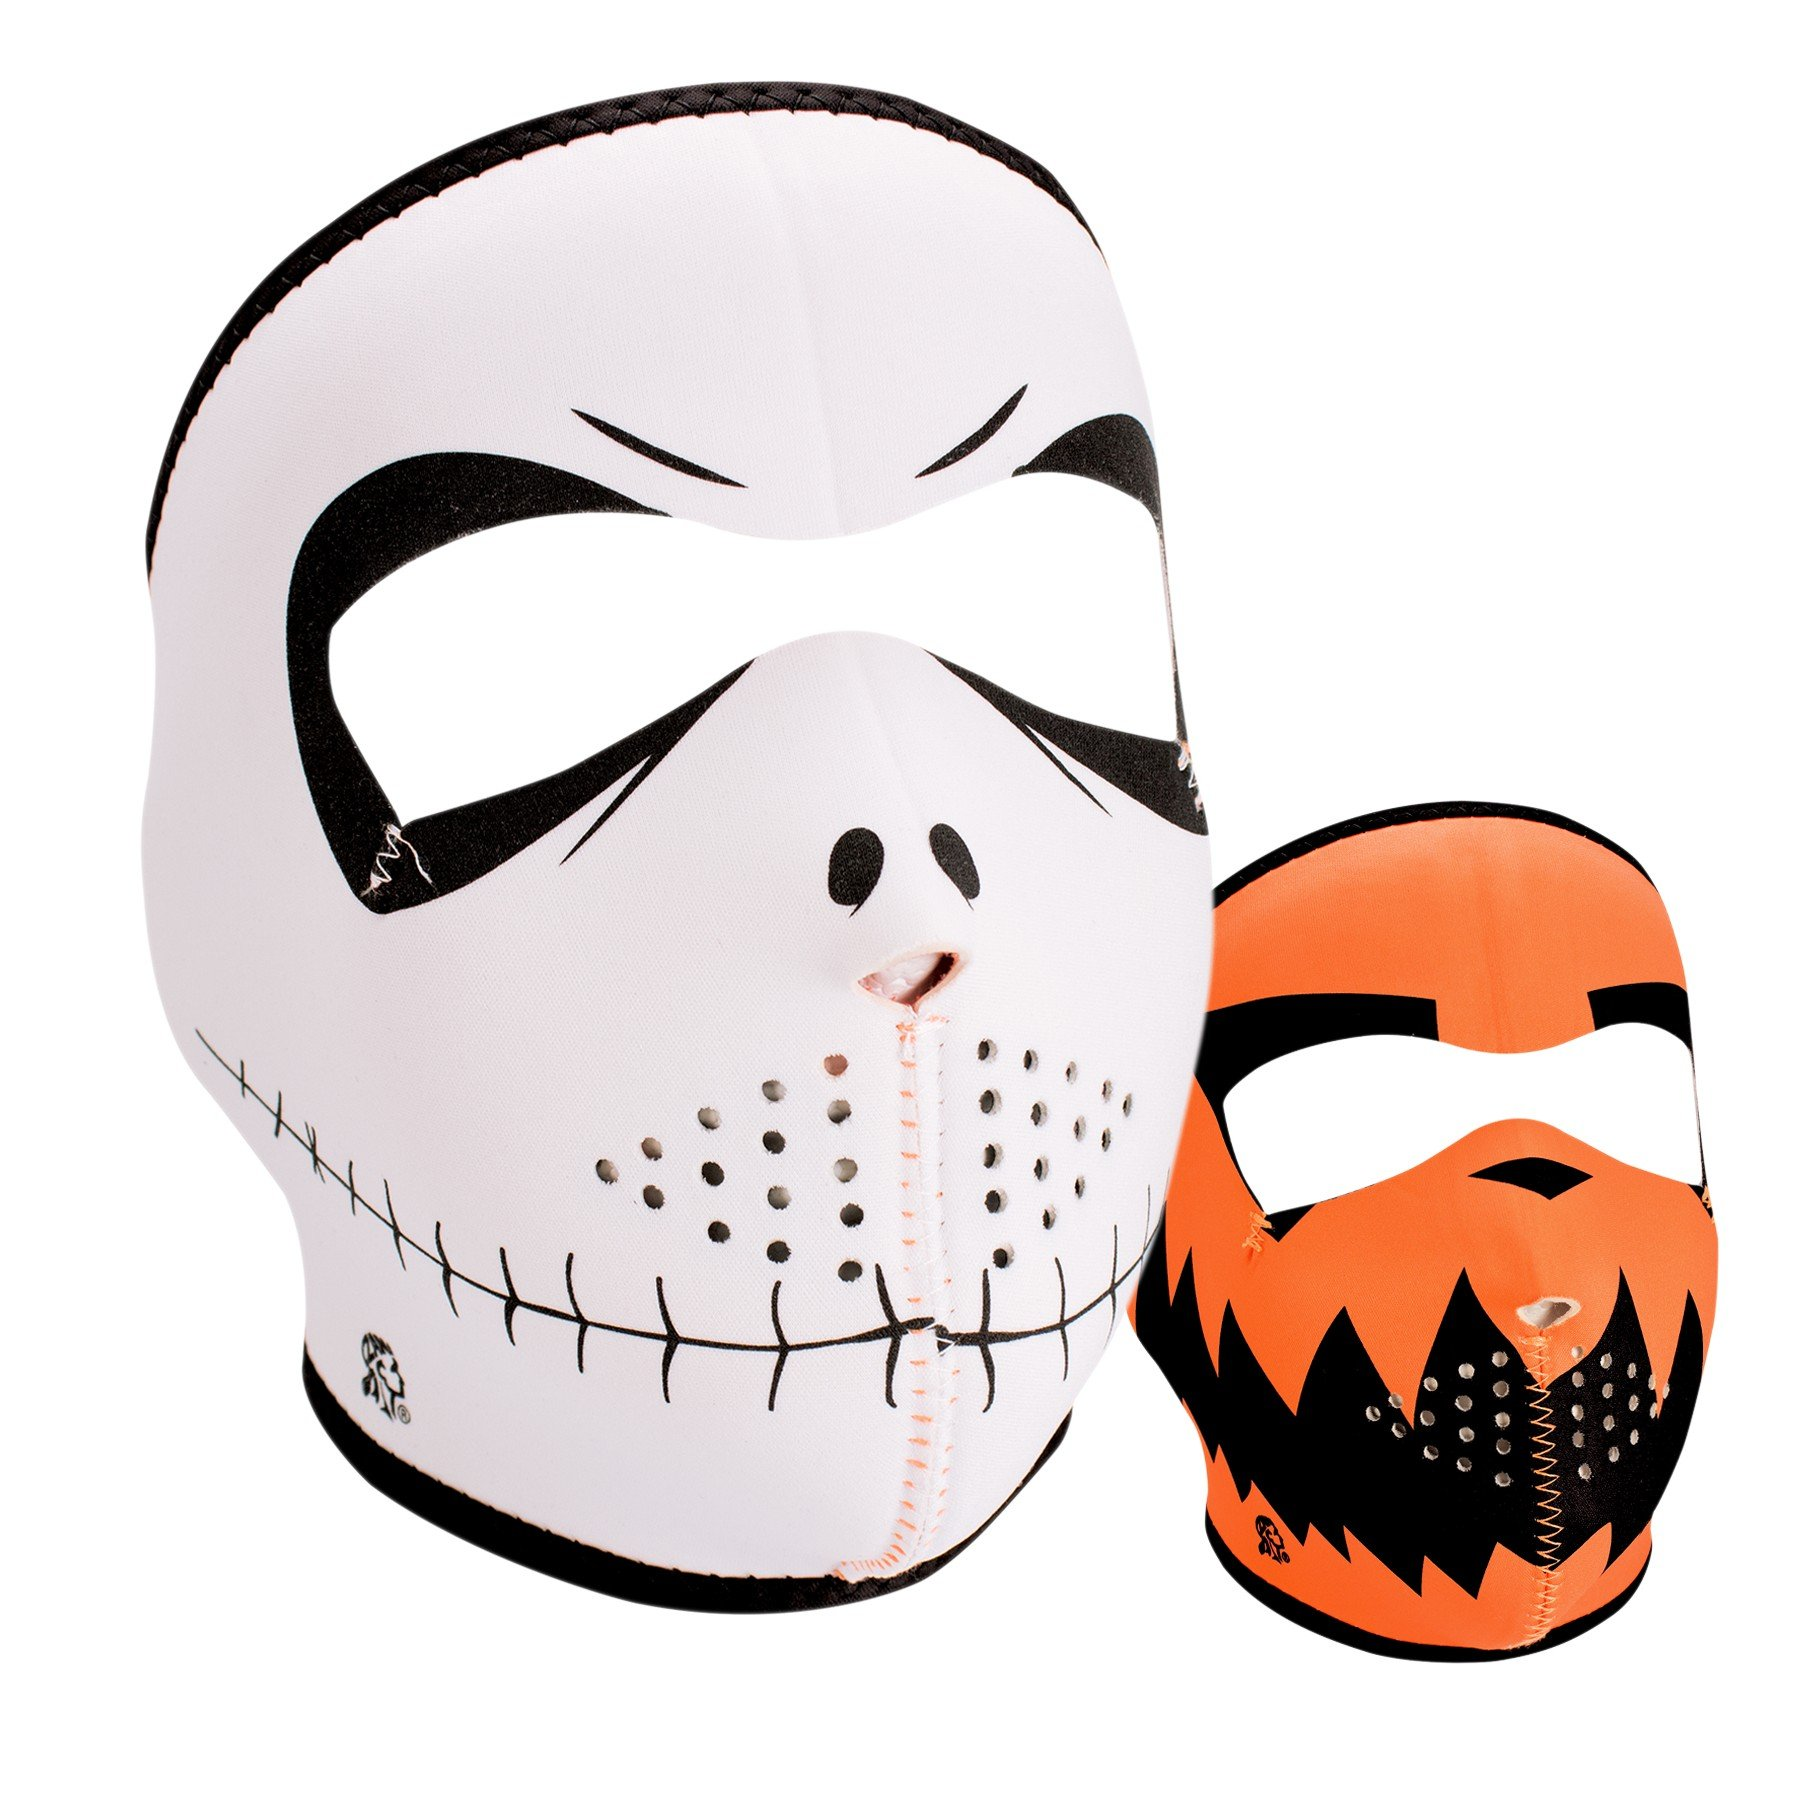 Zanheadgear WNFM096 Neoprene Full Face Mask, Skelly Reverses to Pumpkin